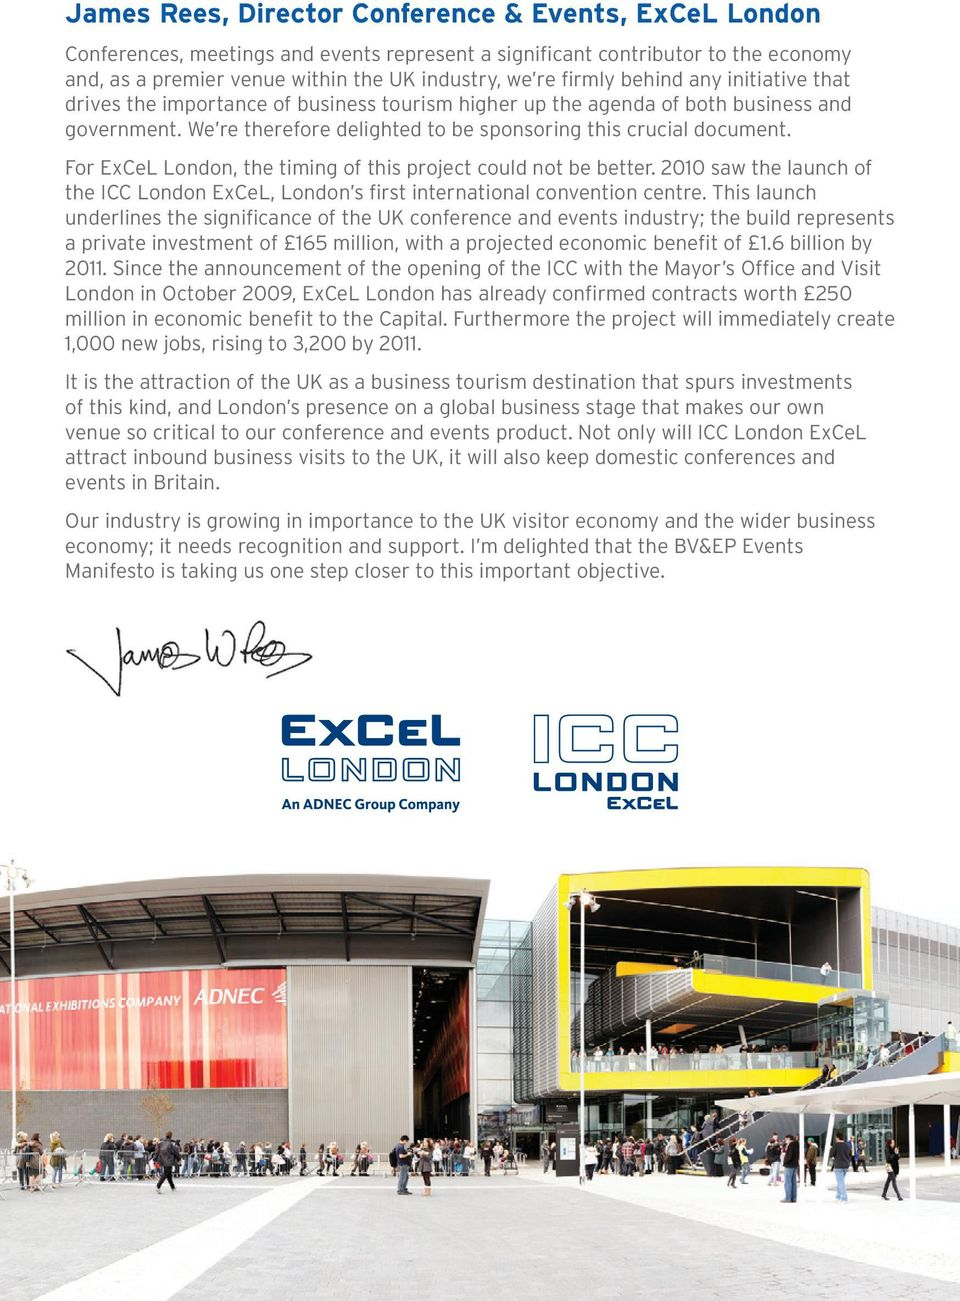 For ExCeL London, the timing of this project could not be better. 2010 saw the launch of the ICC London ExCeL, London s first international convention centre.